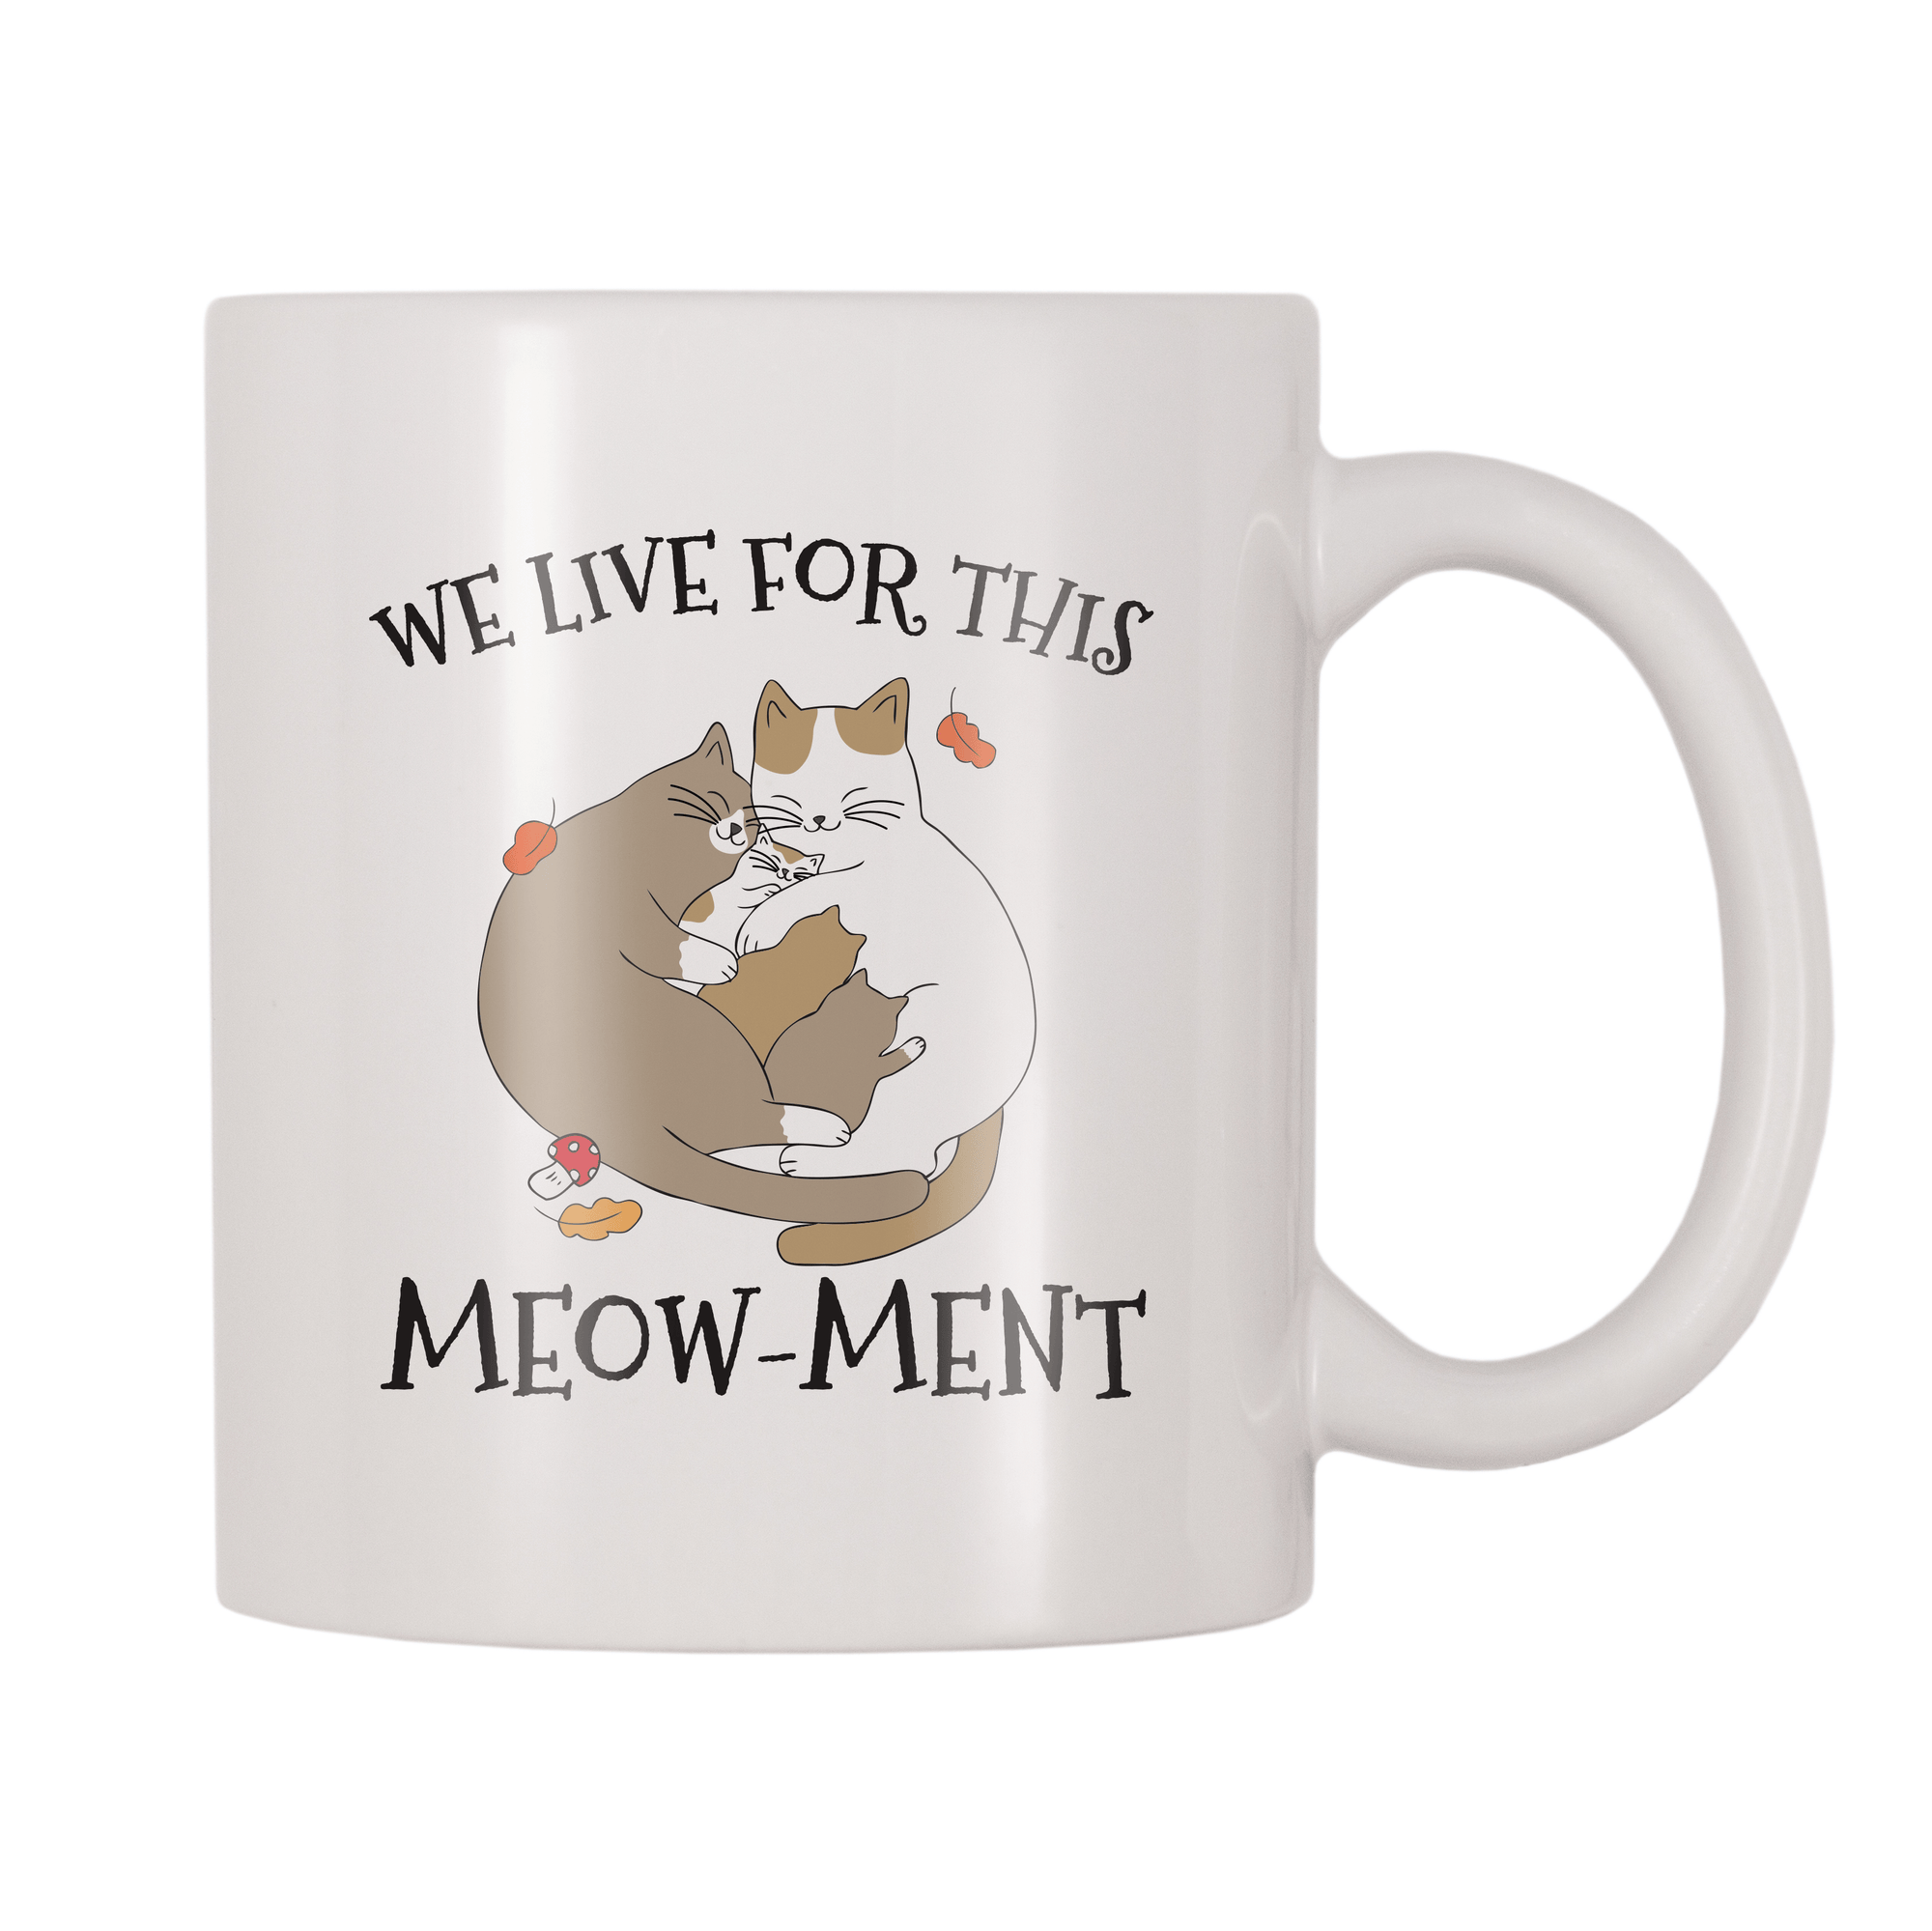 We Live For This Meow-ment 11oz Coffee Mug